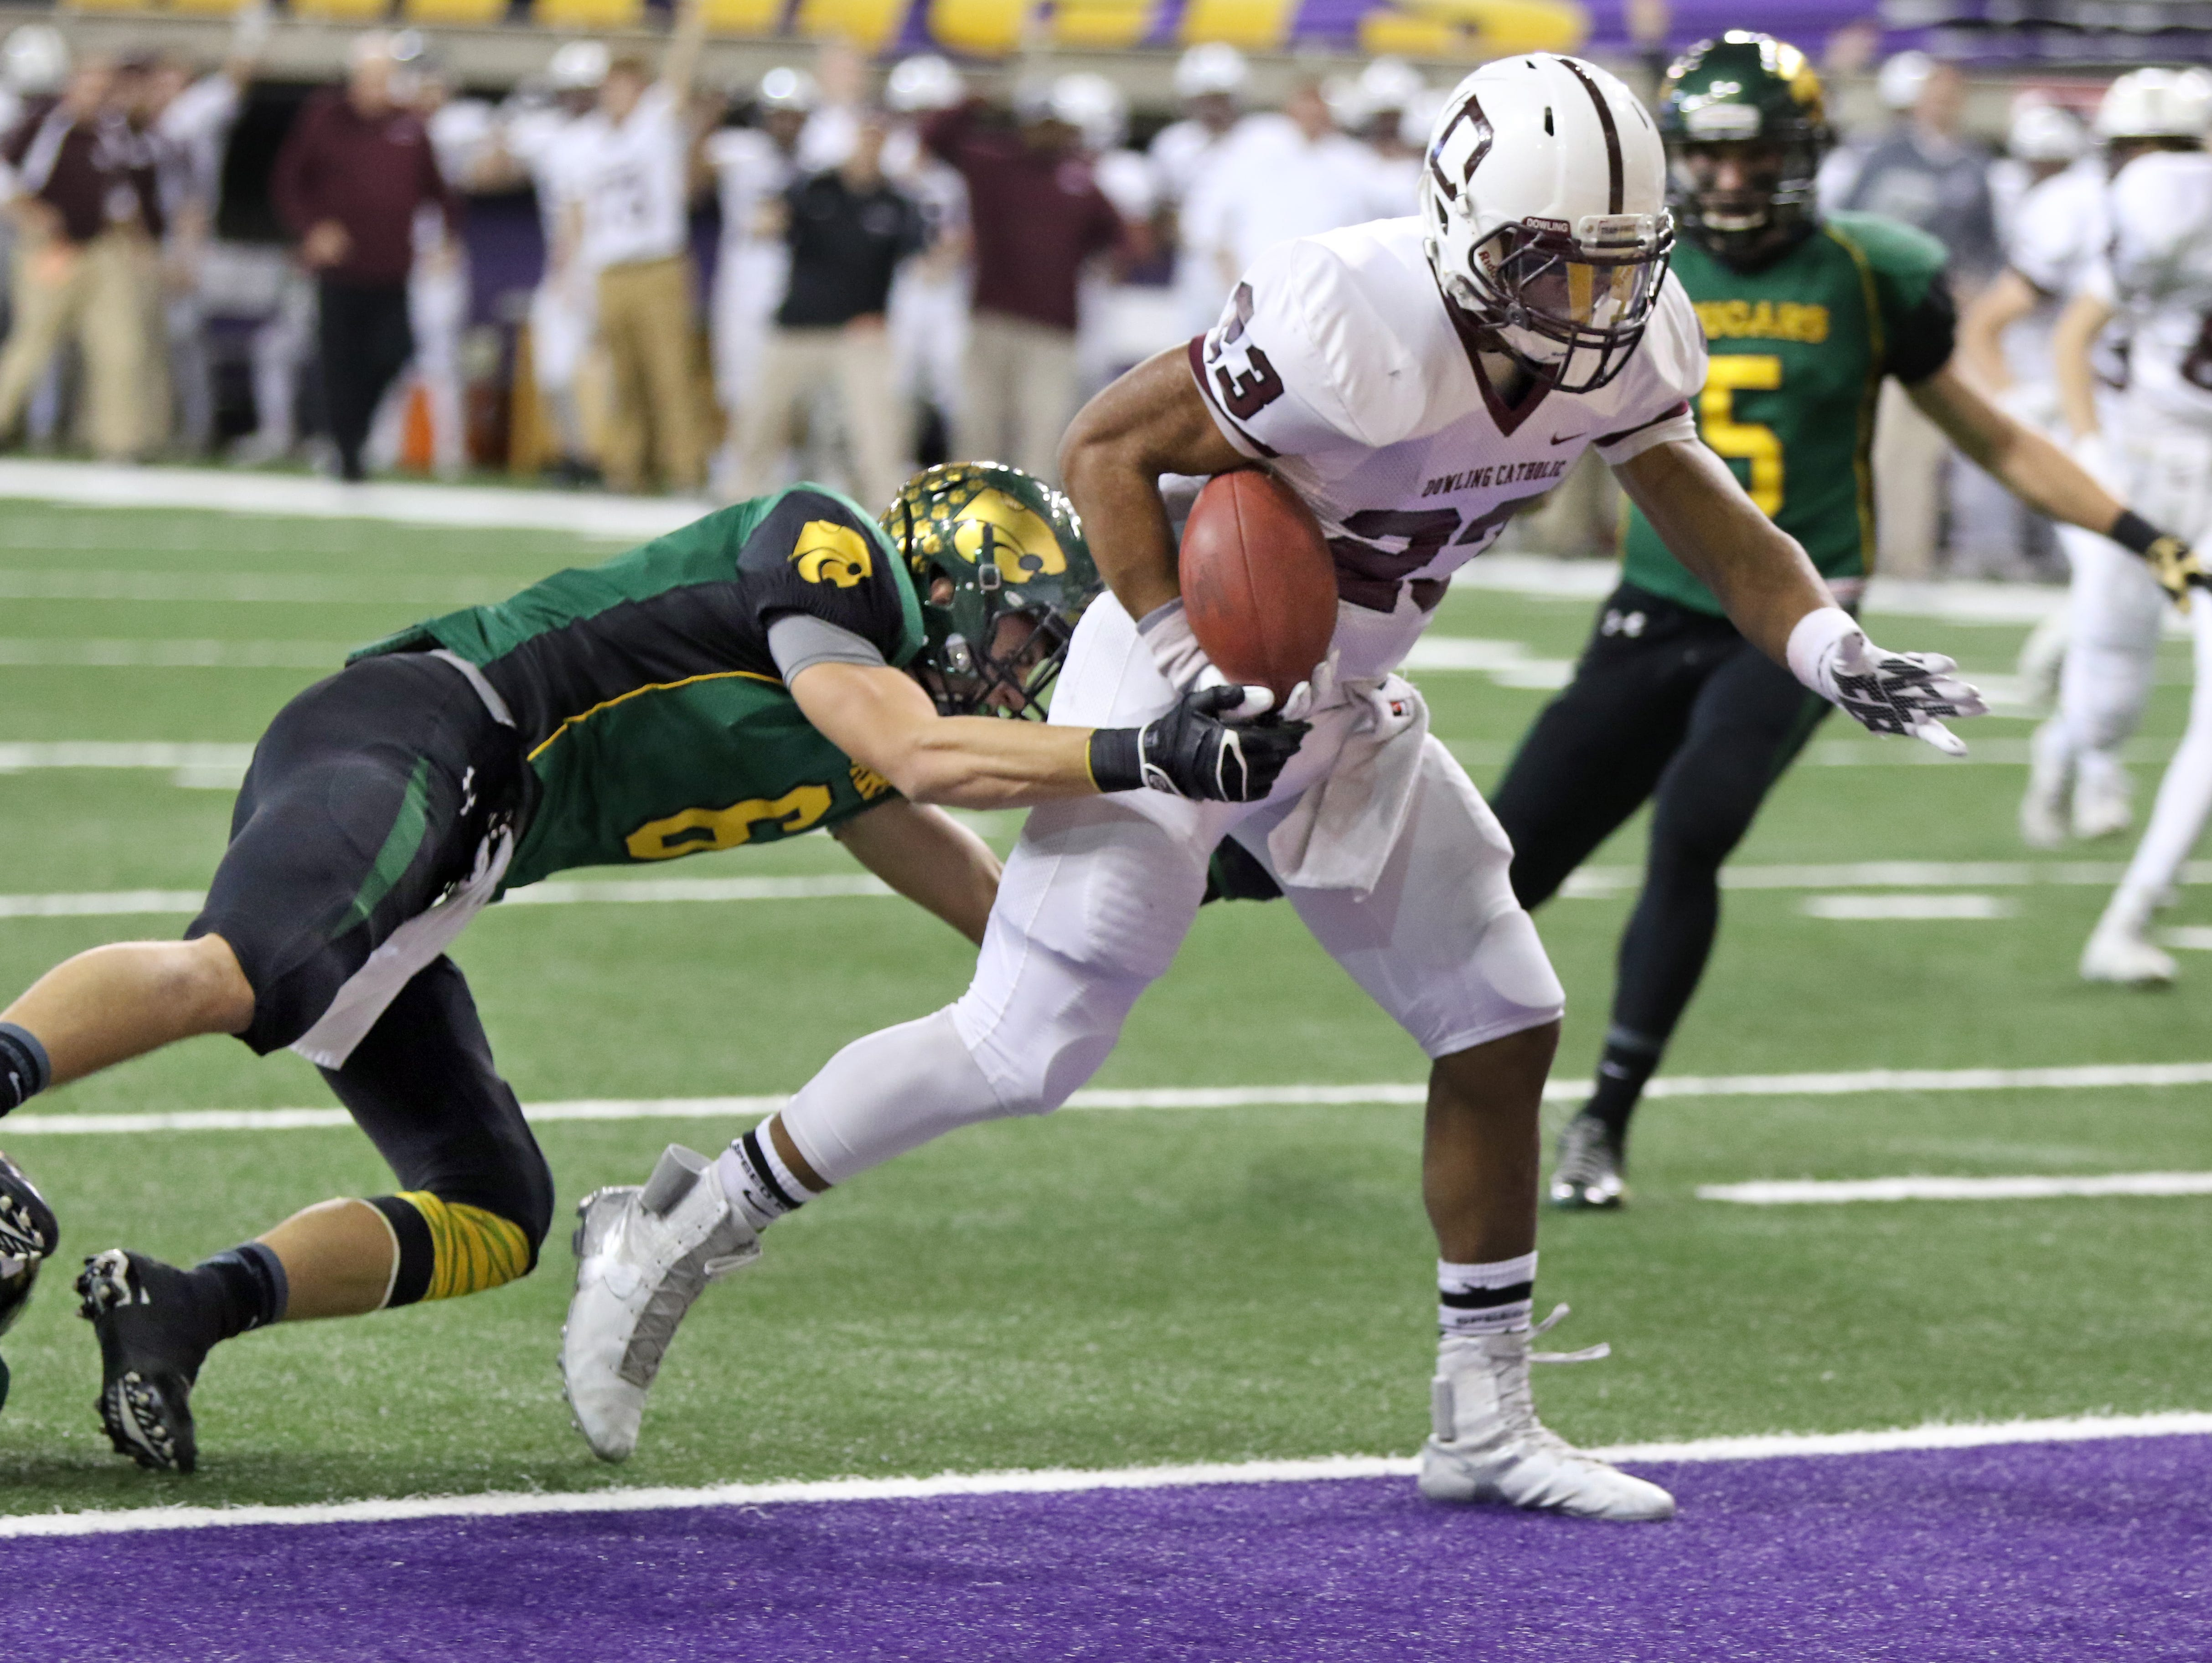 Jacob Zachary of Dowling Catholic runs for a touchdown against Cedar Rapids Kennedy in the Class 4A Championship game Monday, Nov. 23, 2015.